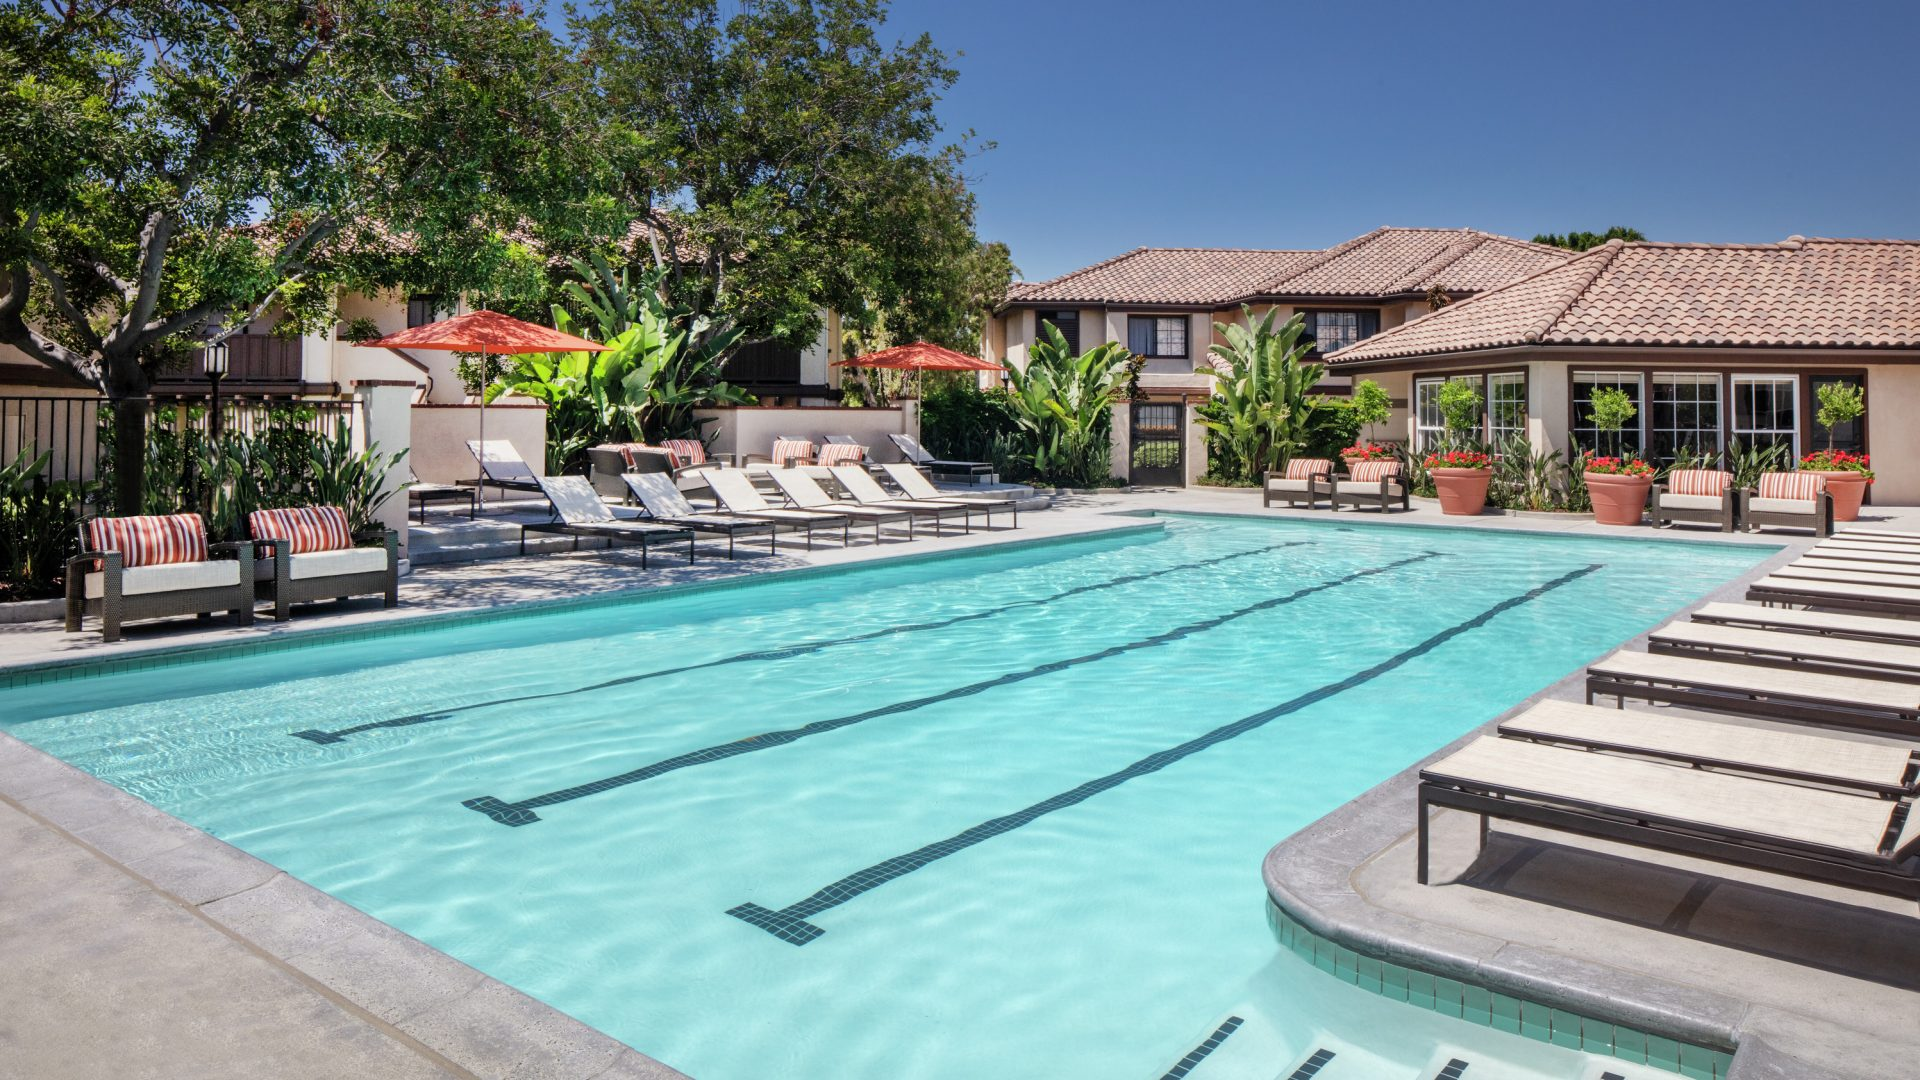 Exterior view of pool at Rancho Tierra Apartment Homes in Tustin, CA.